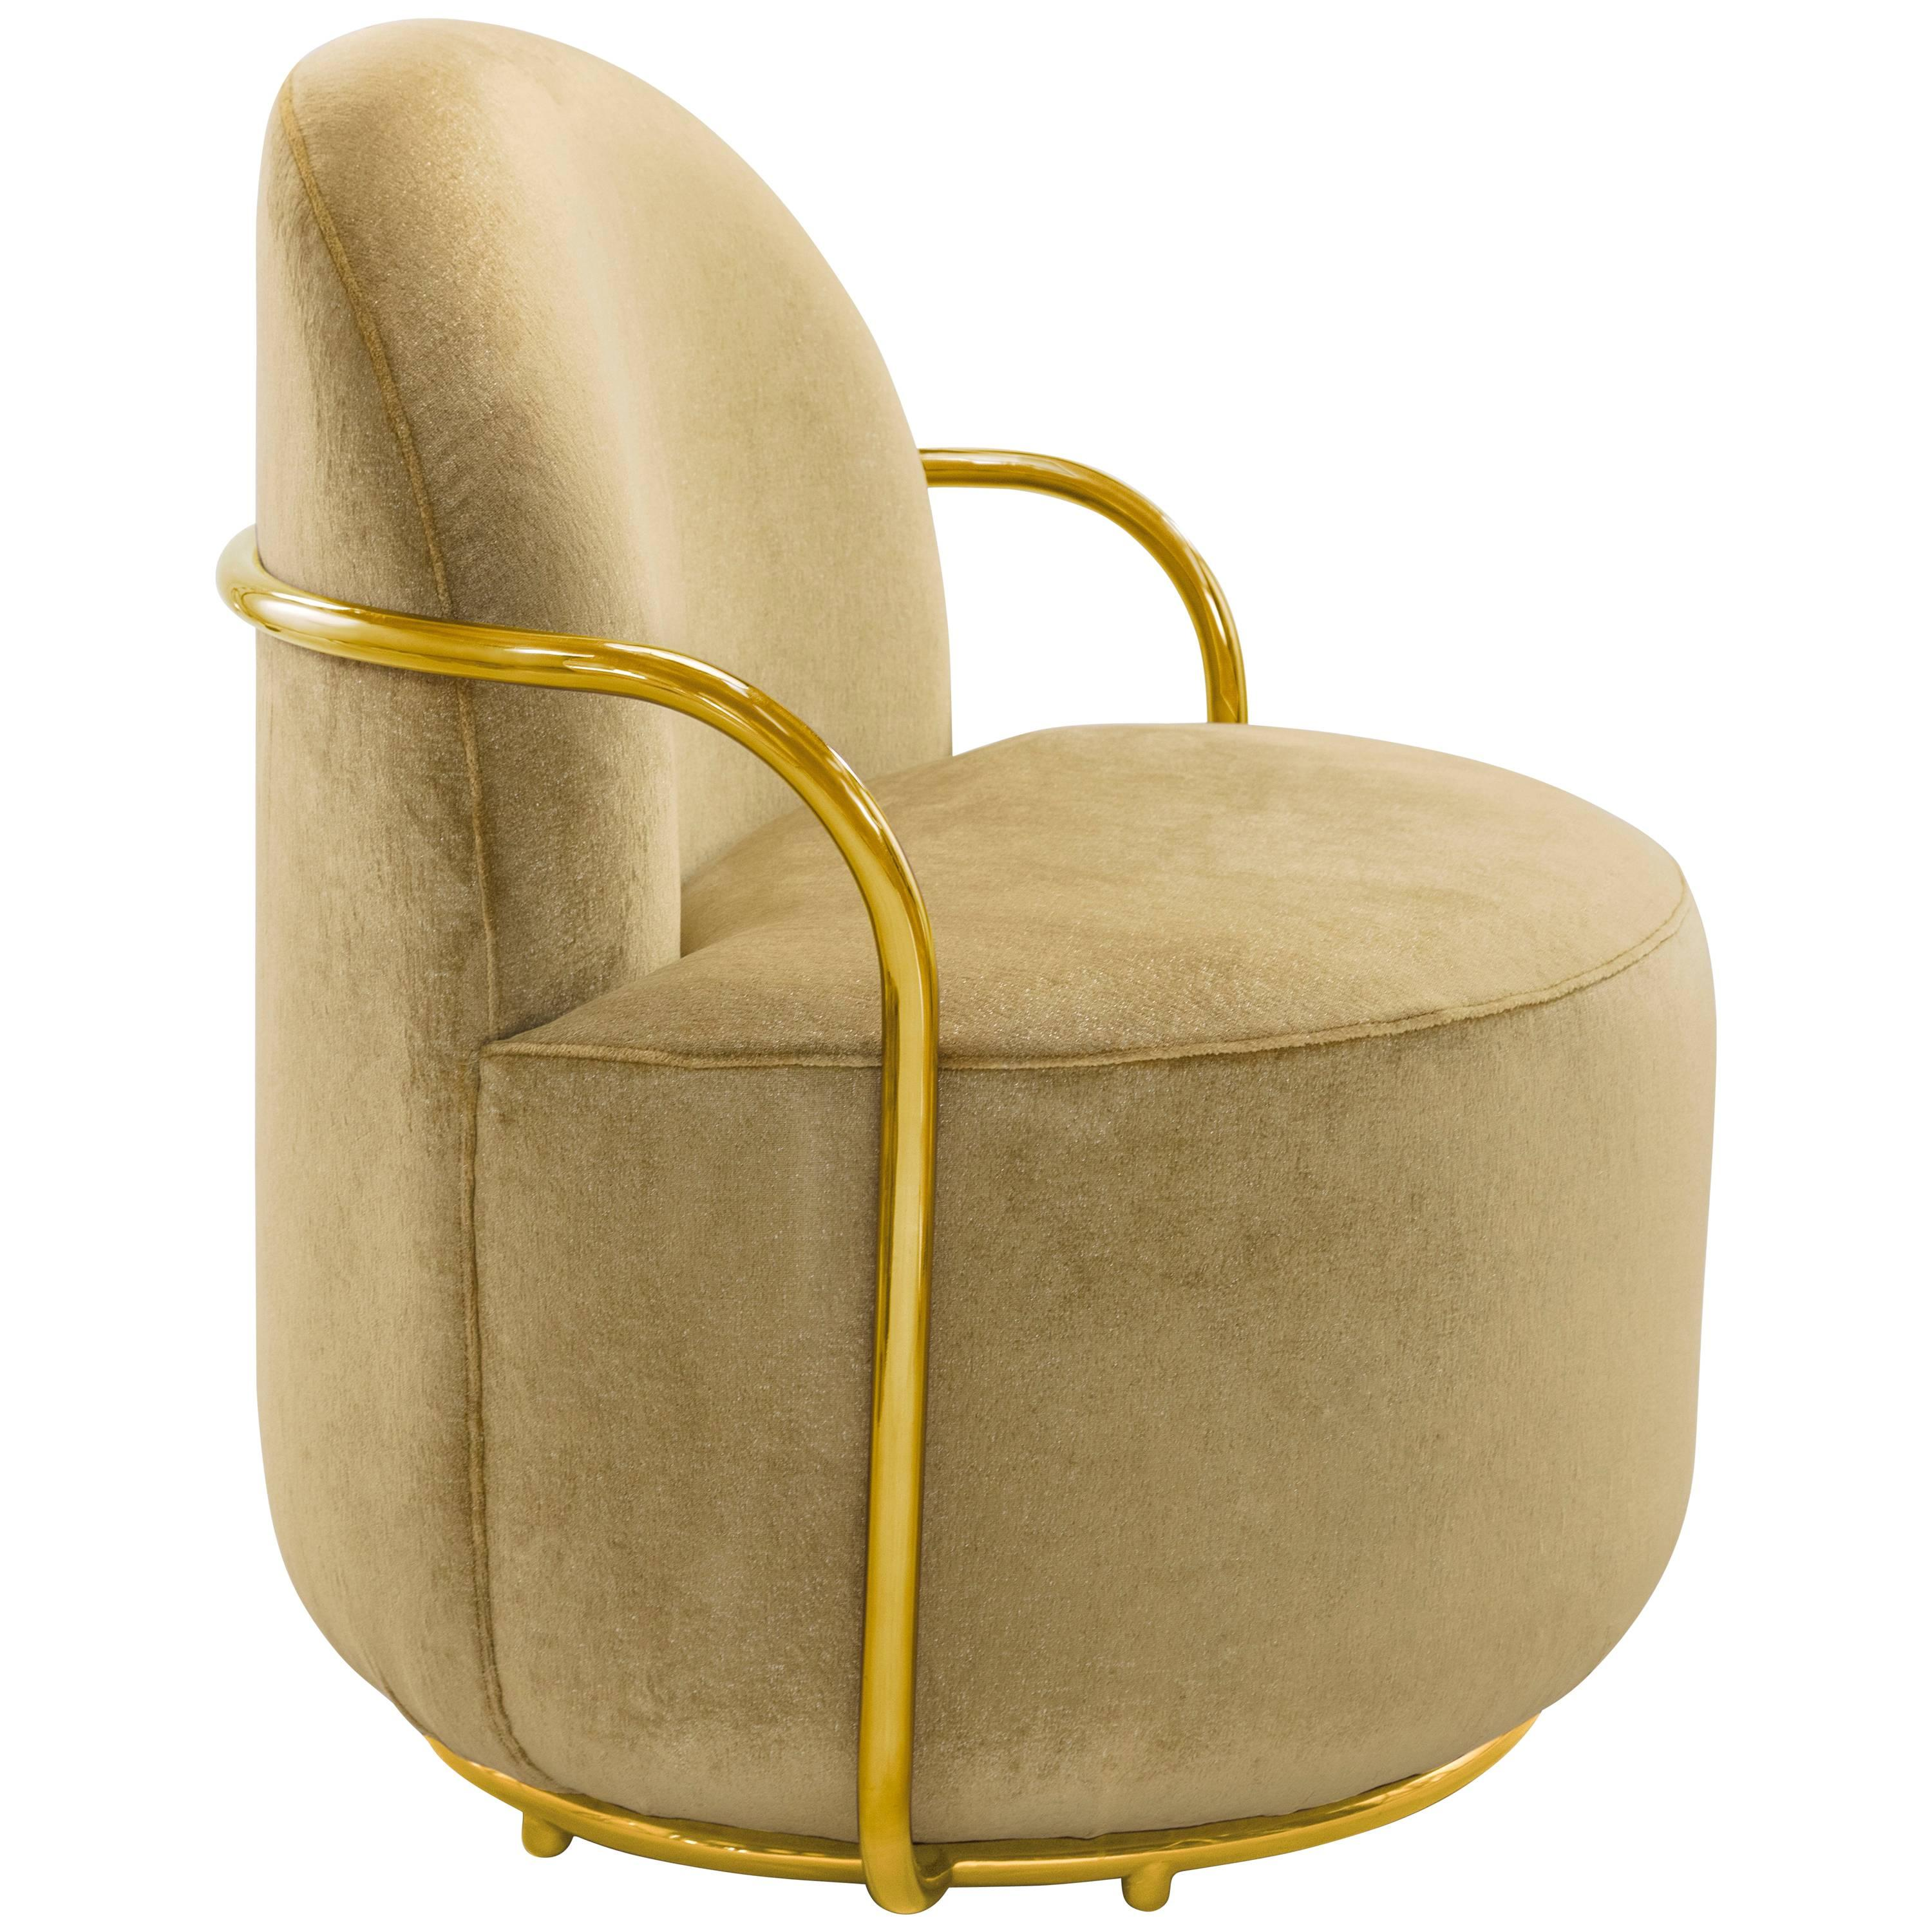 Orion Lounge Chair Gold with Dedar Milano by Nika Zupanc for Scarlet Splendour